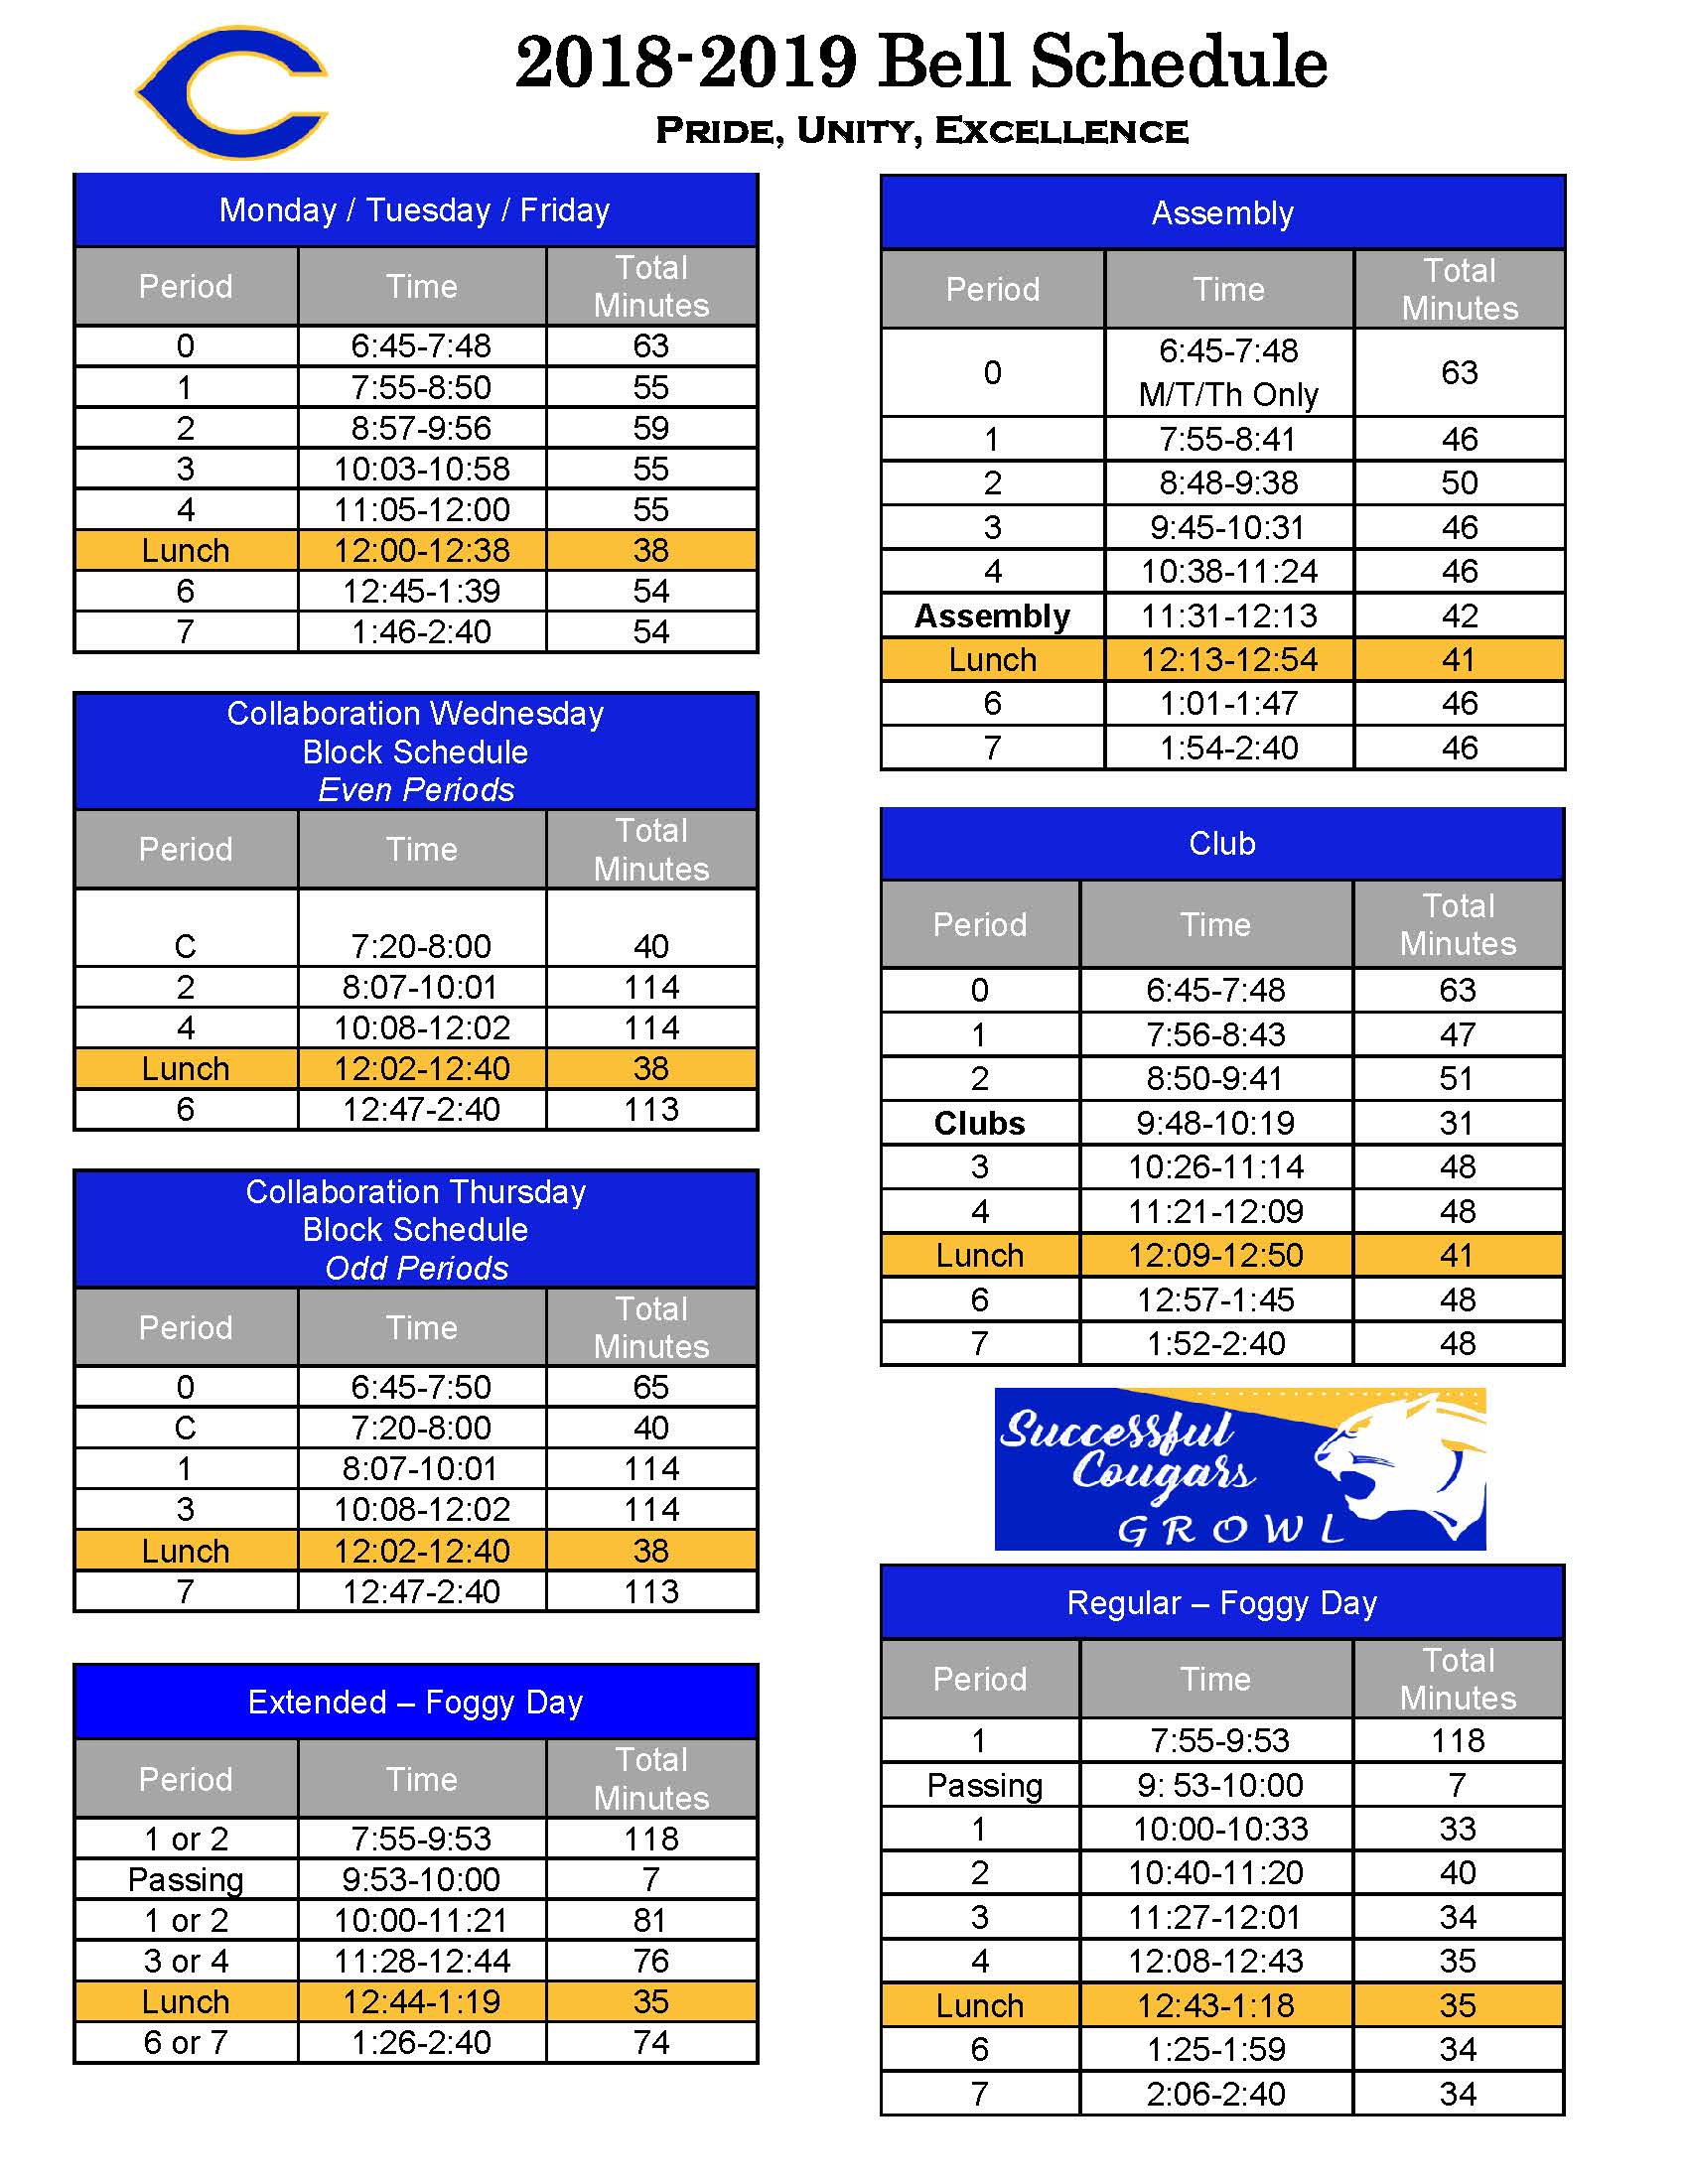 2018-2019 Bell Schedule. Click the image to download.